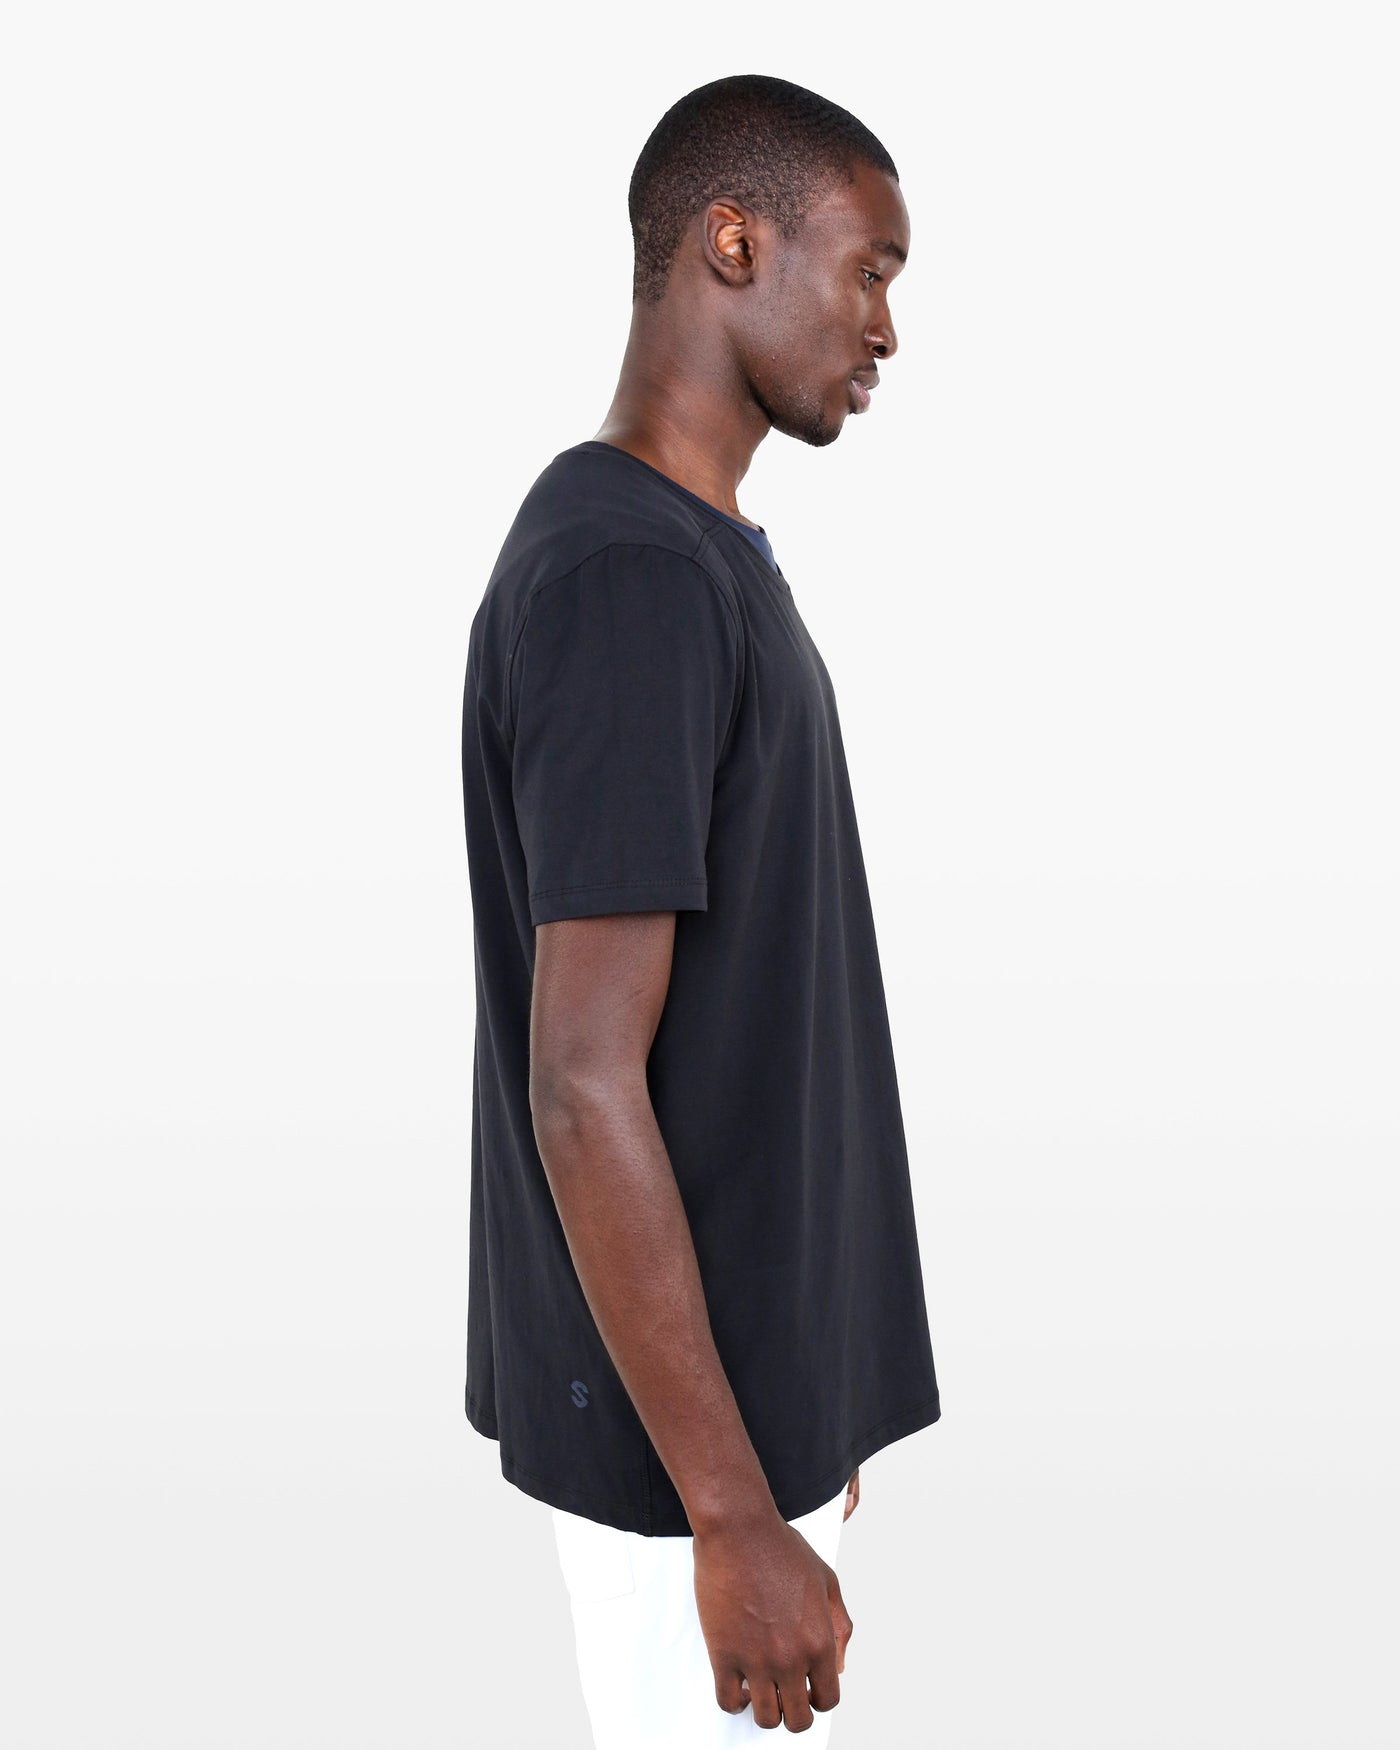 Galileo Tee DRJ in black